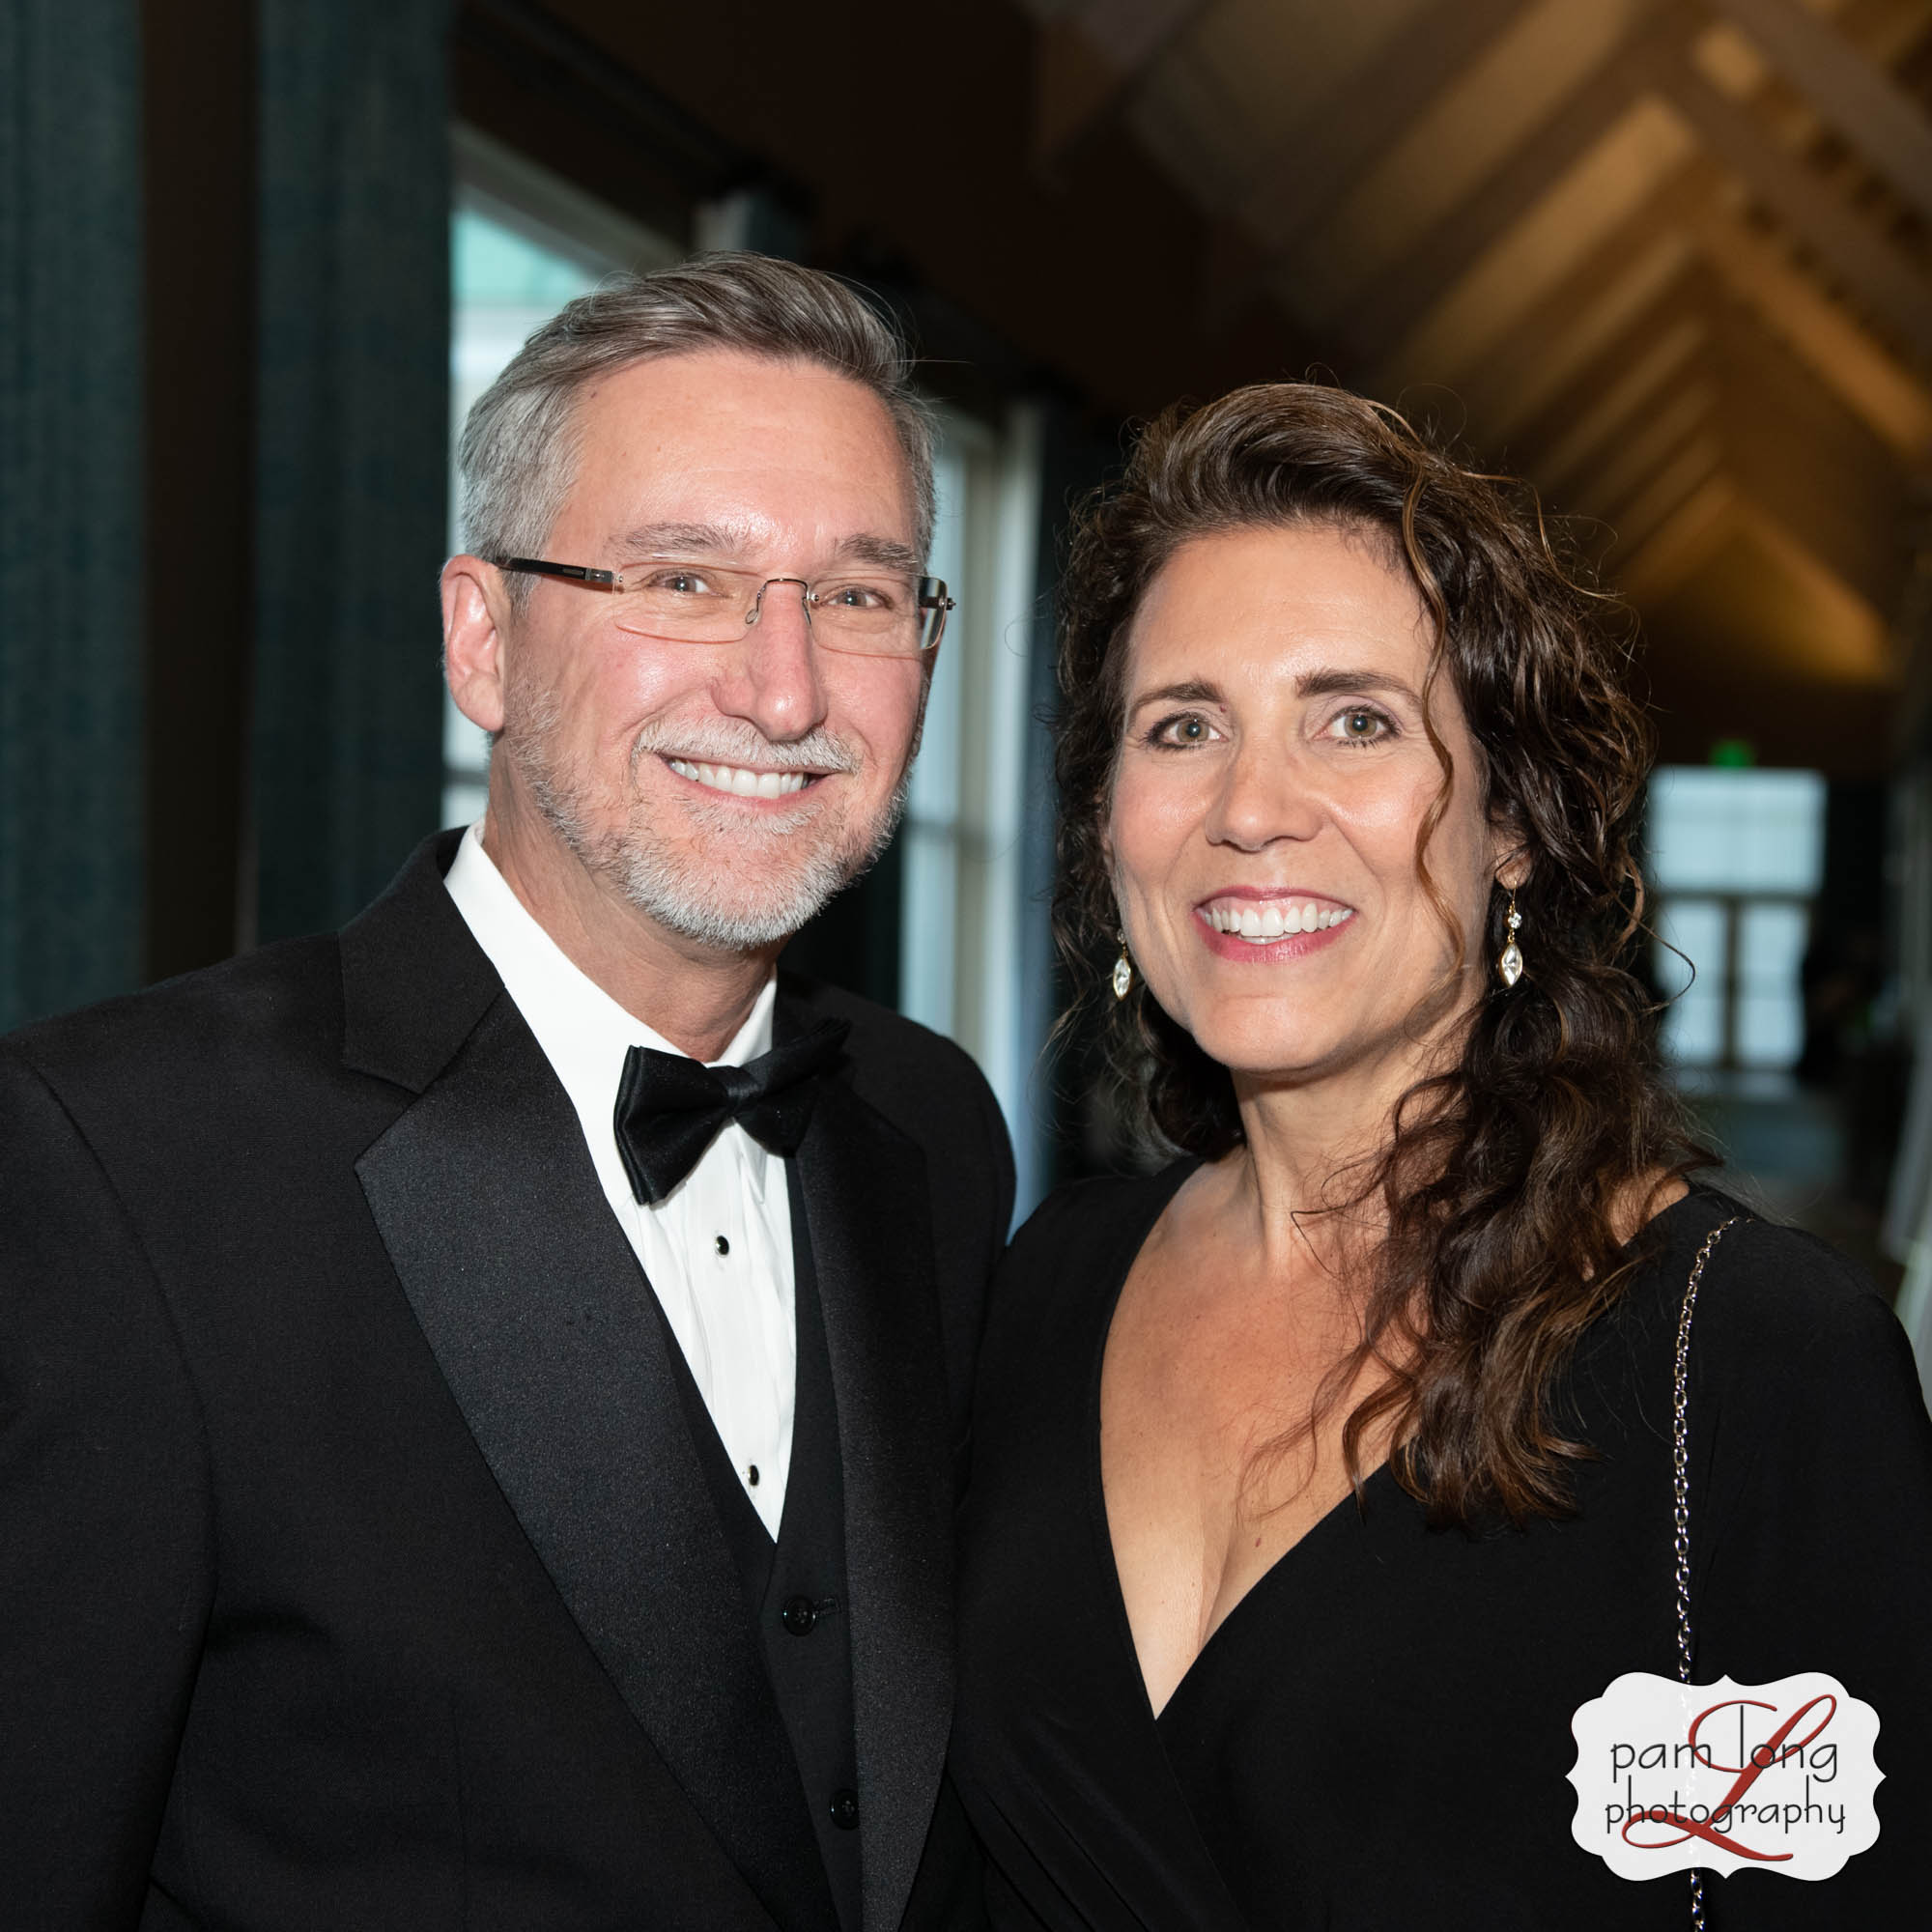 Pam-Long-Photography-HoCo-Chamber-20191005-30